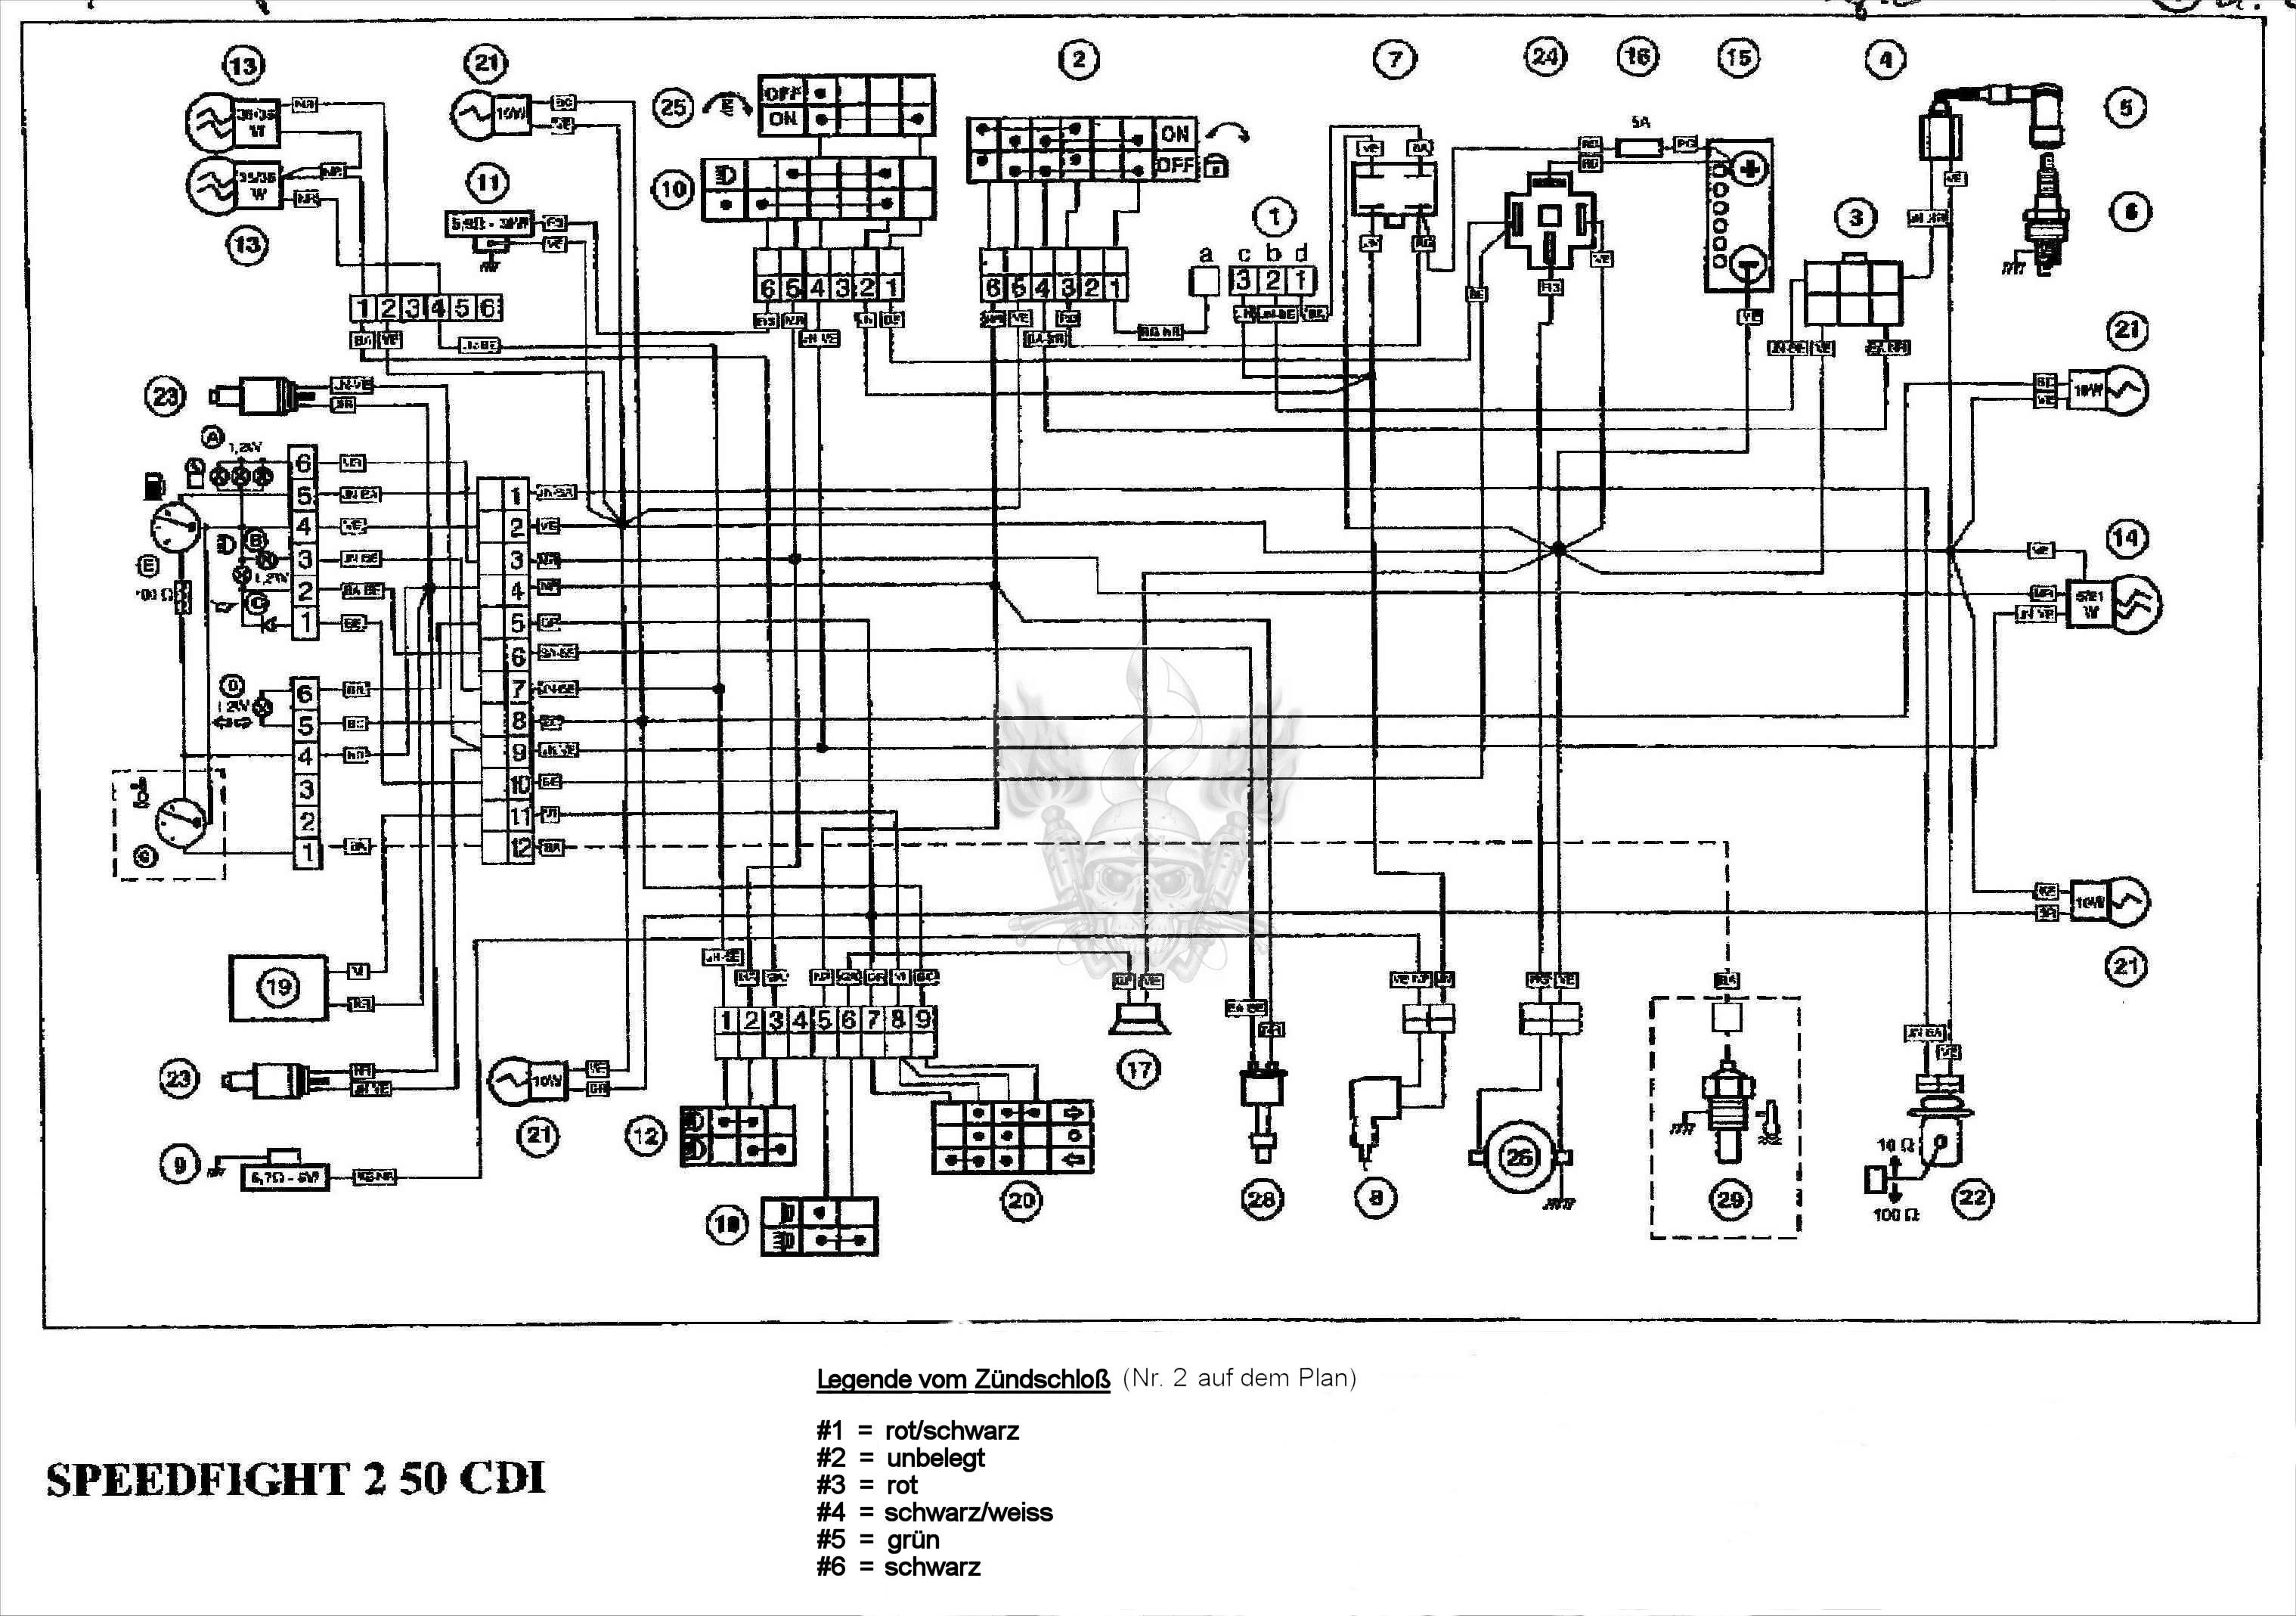 Fancy peugeot 106 wiring diagram collection wiring standart enchanting peugeot 306 wiring diagram download crest everything swarovskicordoba Images